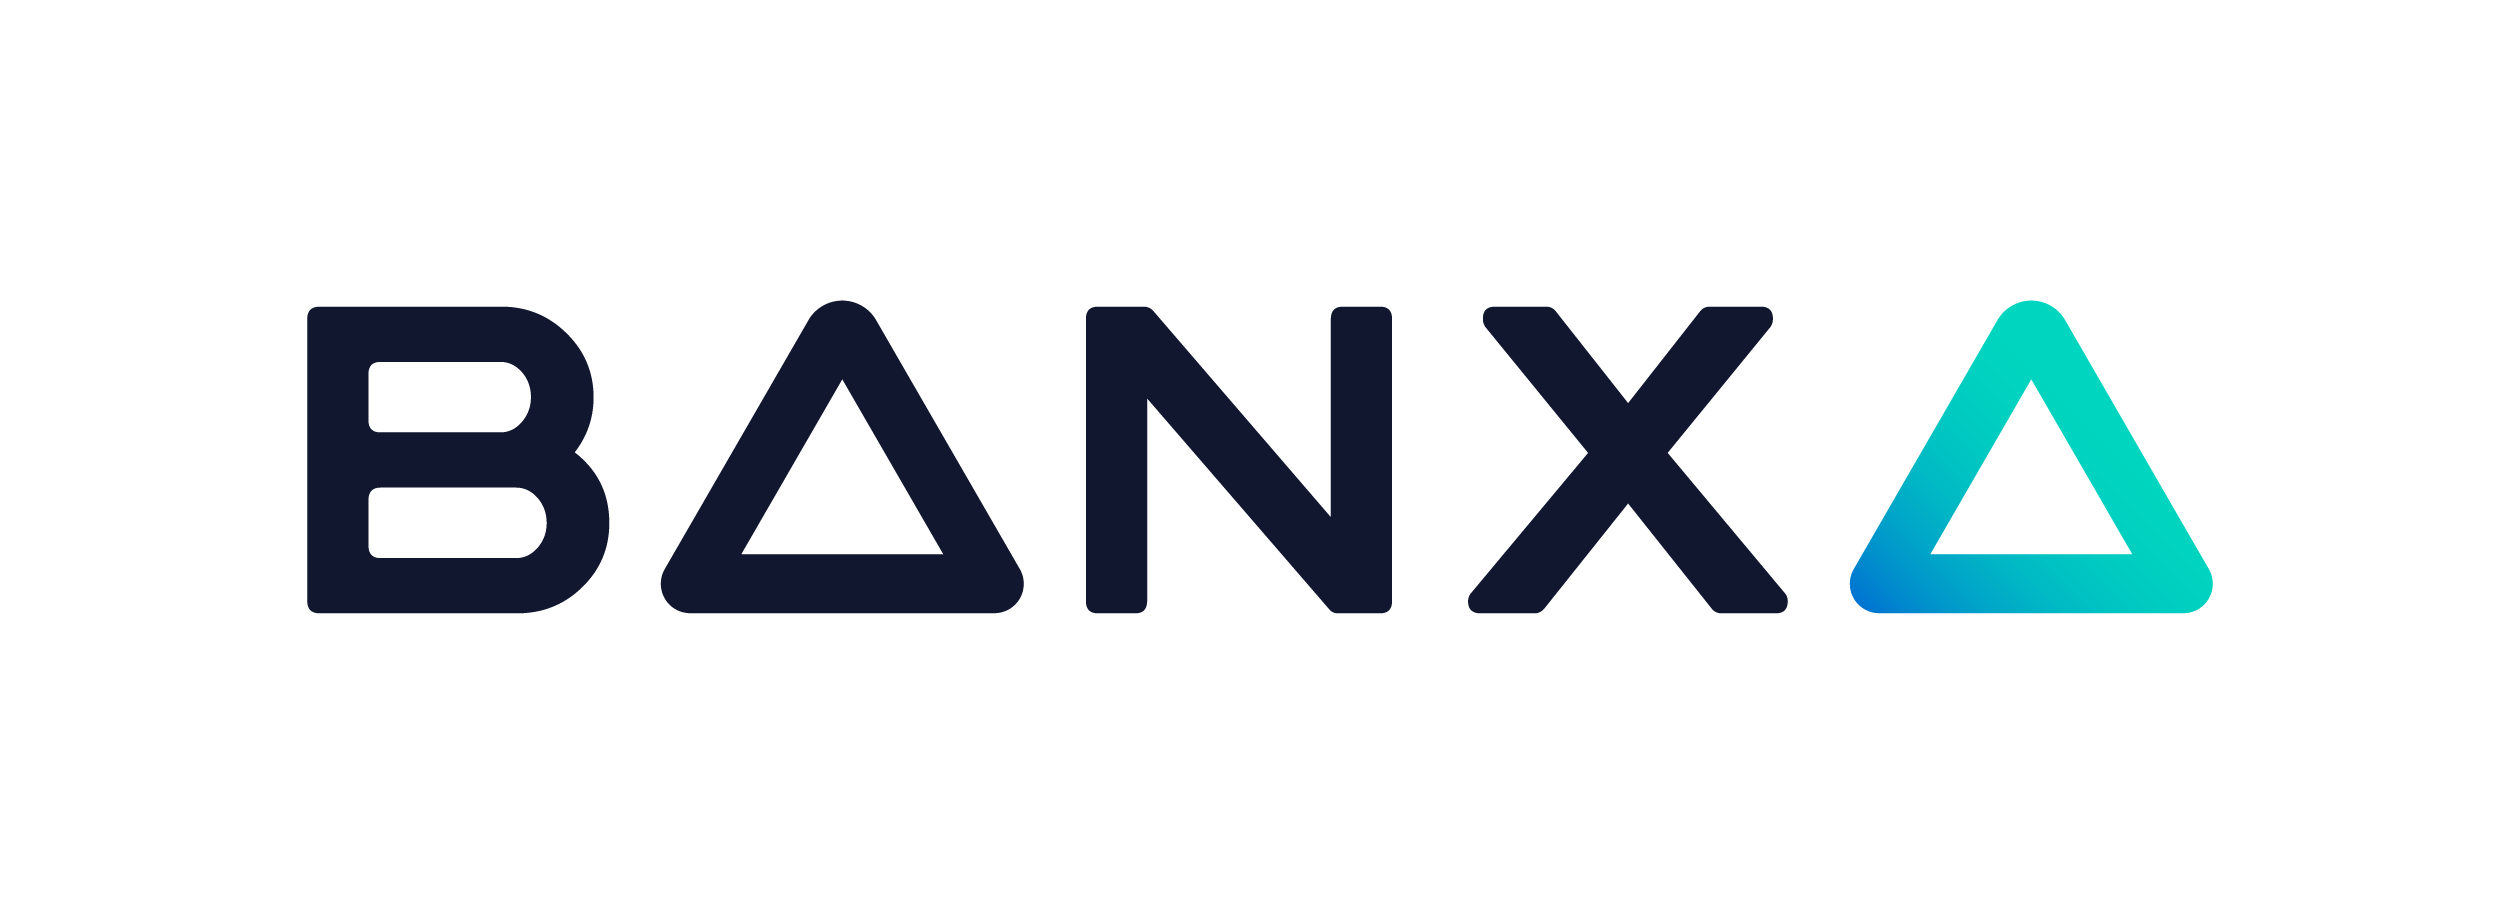 Banxa Holdings Inc.